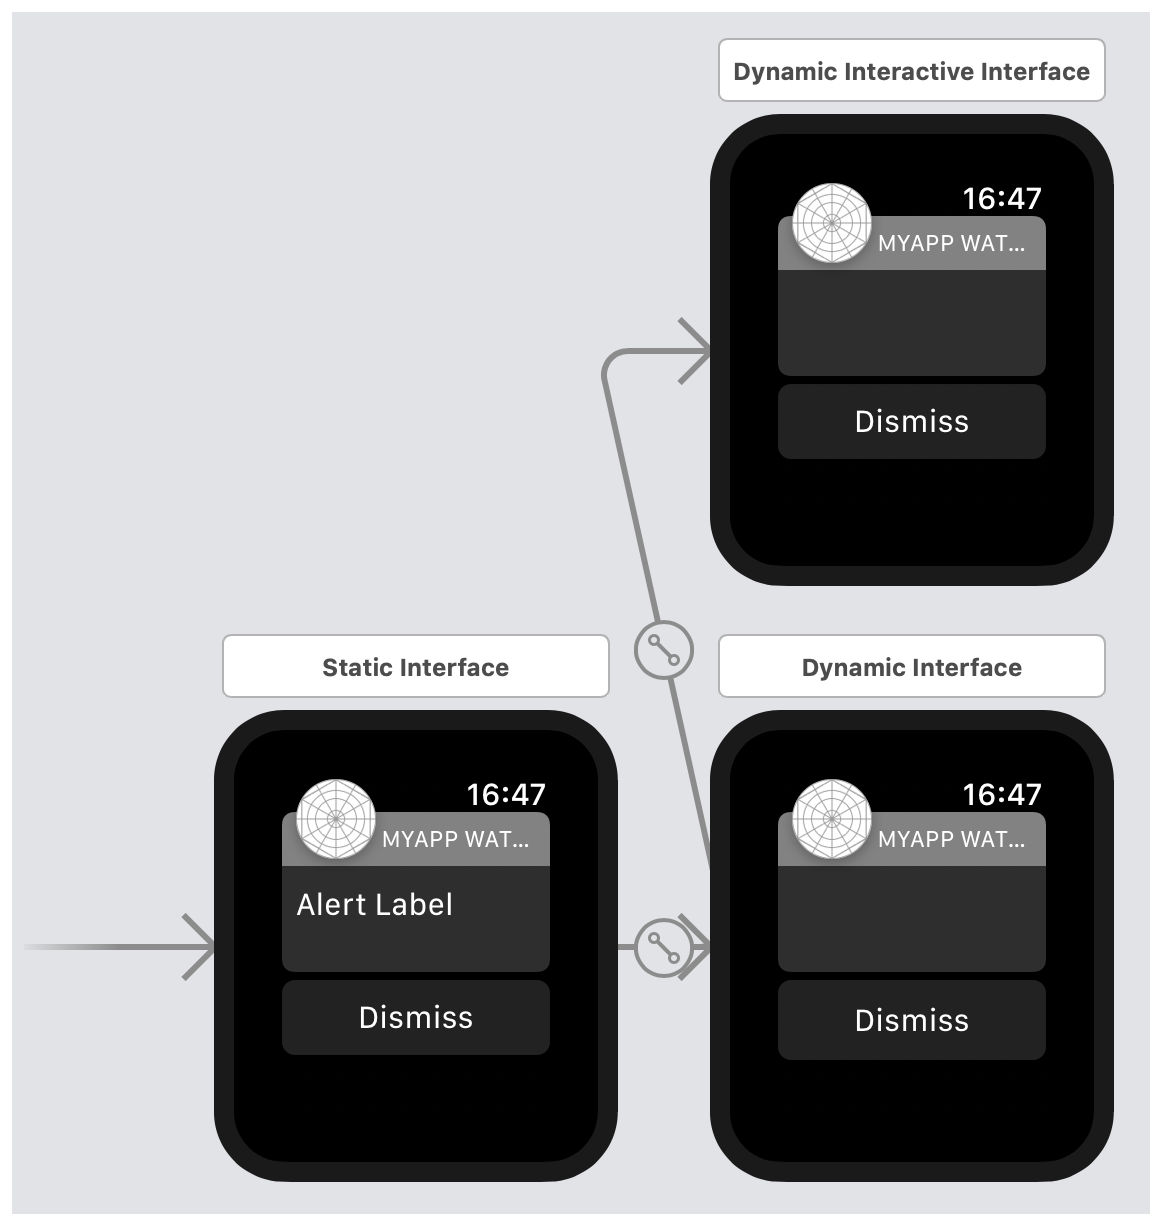 A screenshot showing the unmodified notification interfaces in the storyboard's canvas.